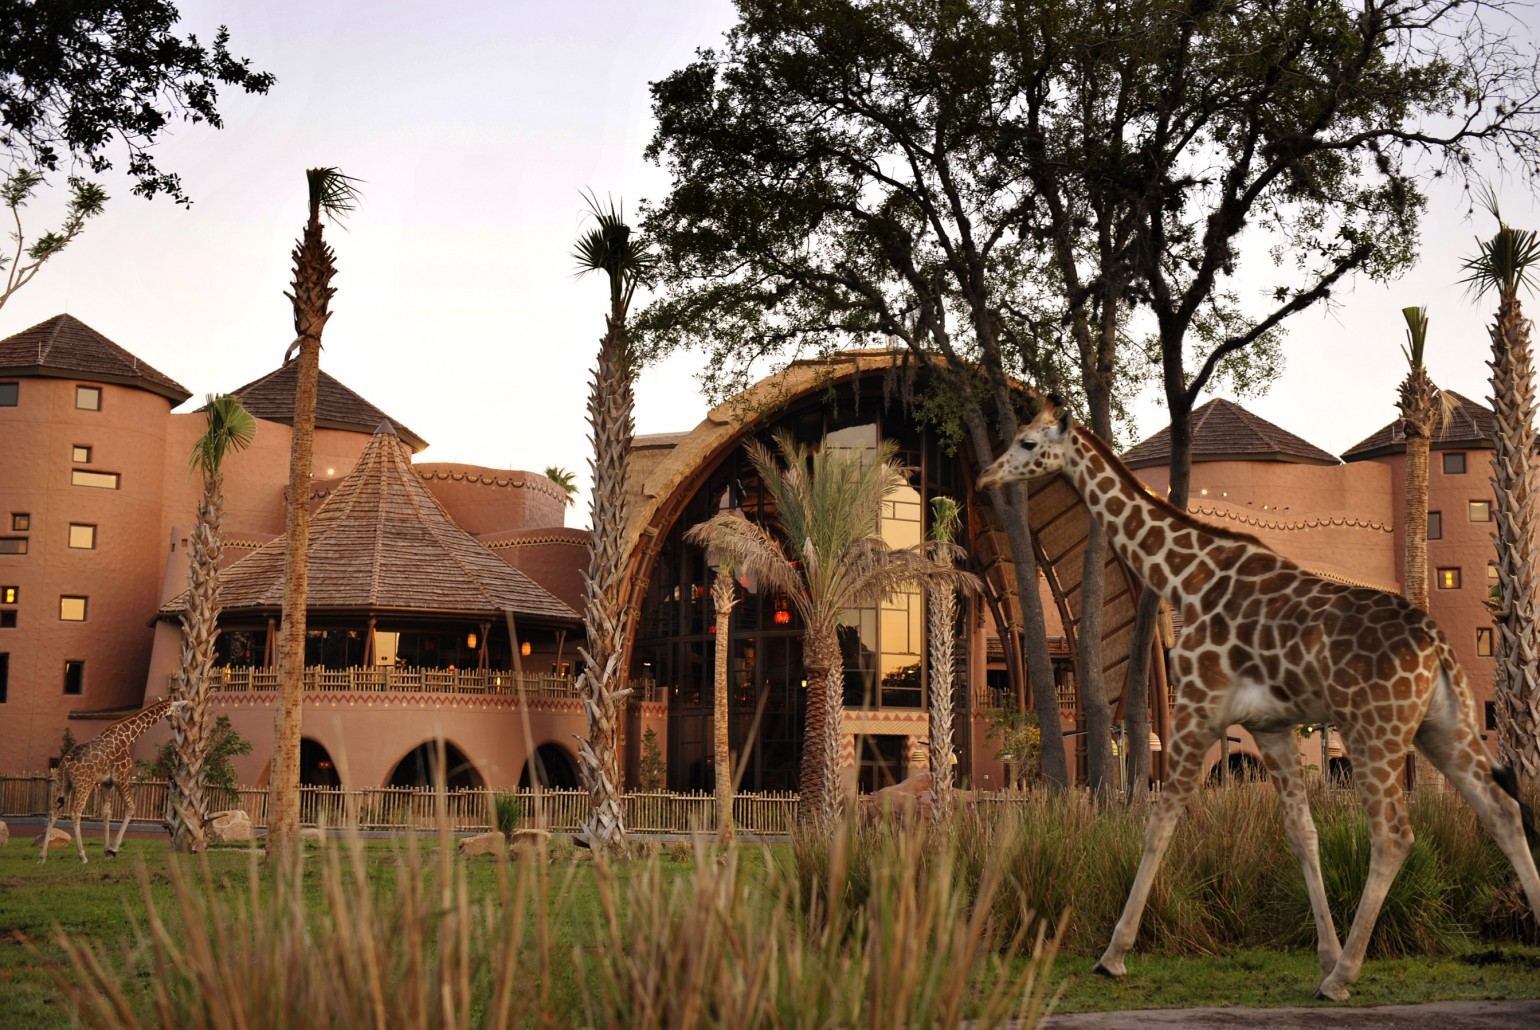 The Ultimate Review of Kidani Village at Walt Disney World featured by top US Disney blogger, Marcie and the Mouse: Kidani Village at Animal Kingdom Lodge at Walt Disney World is one of the coolest hotels at Disney World